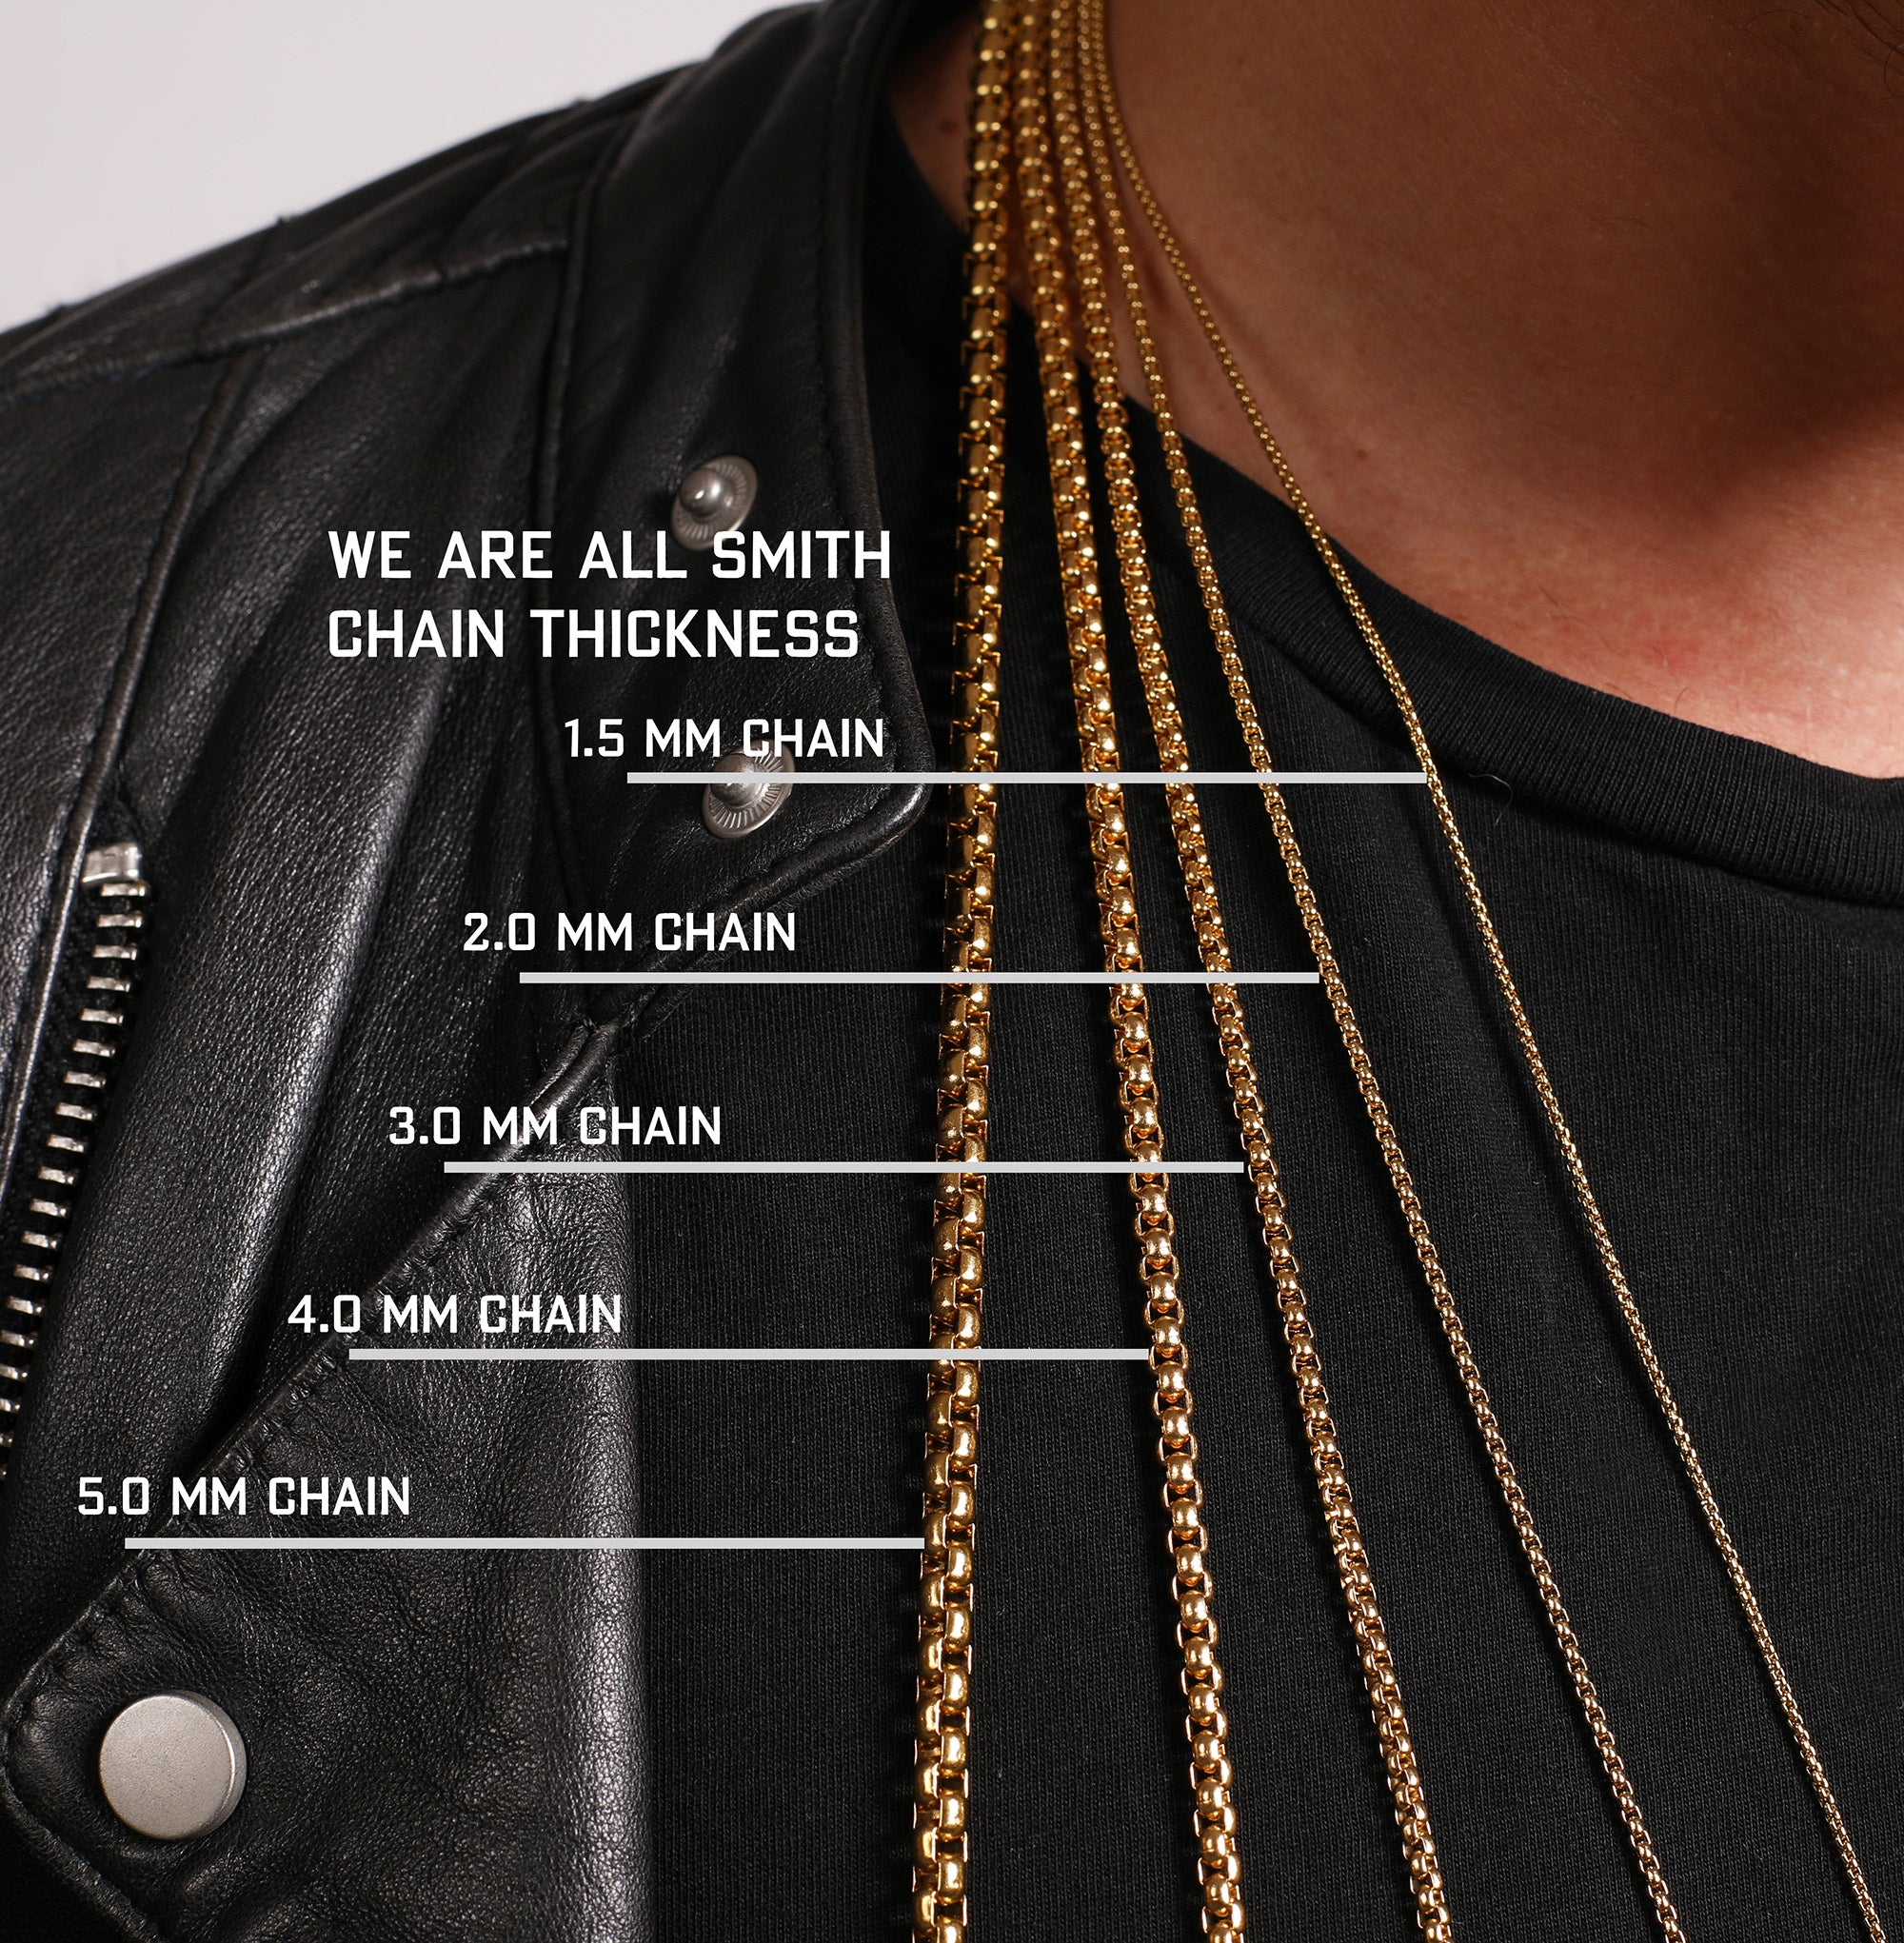 Necklace chain thickness chart